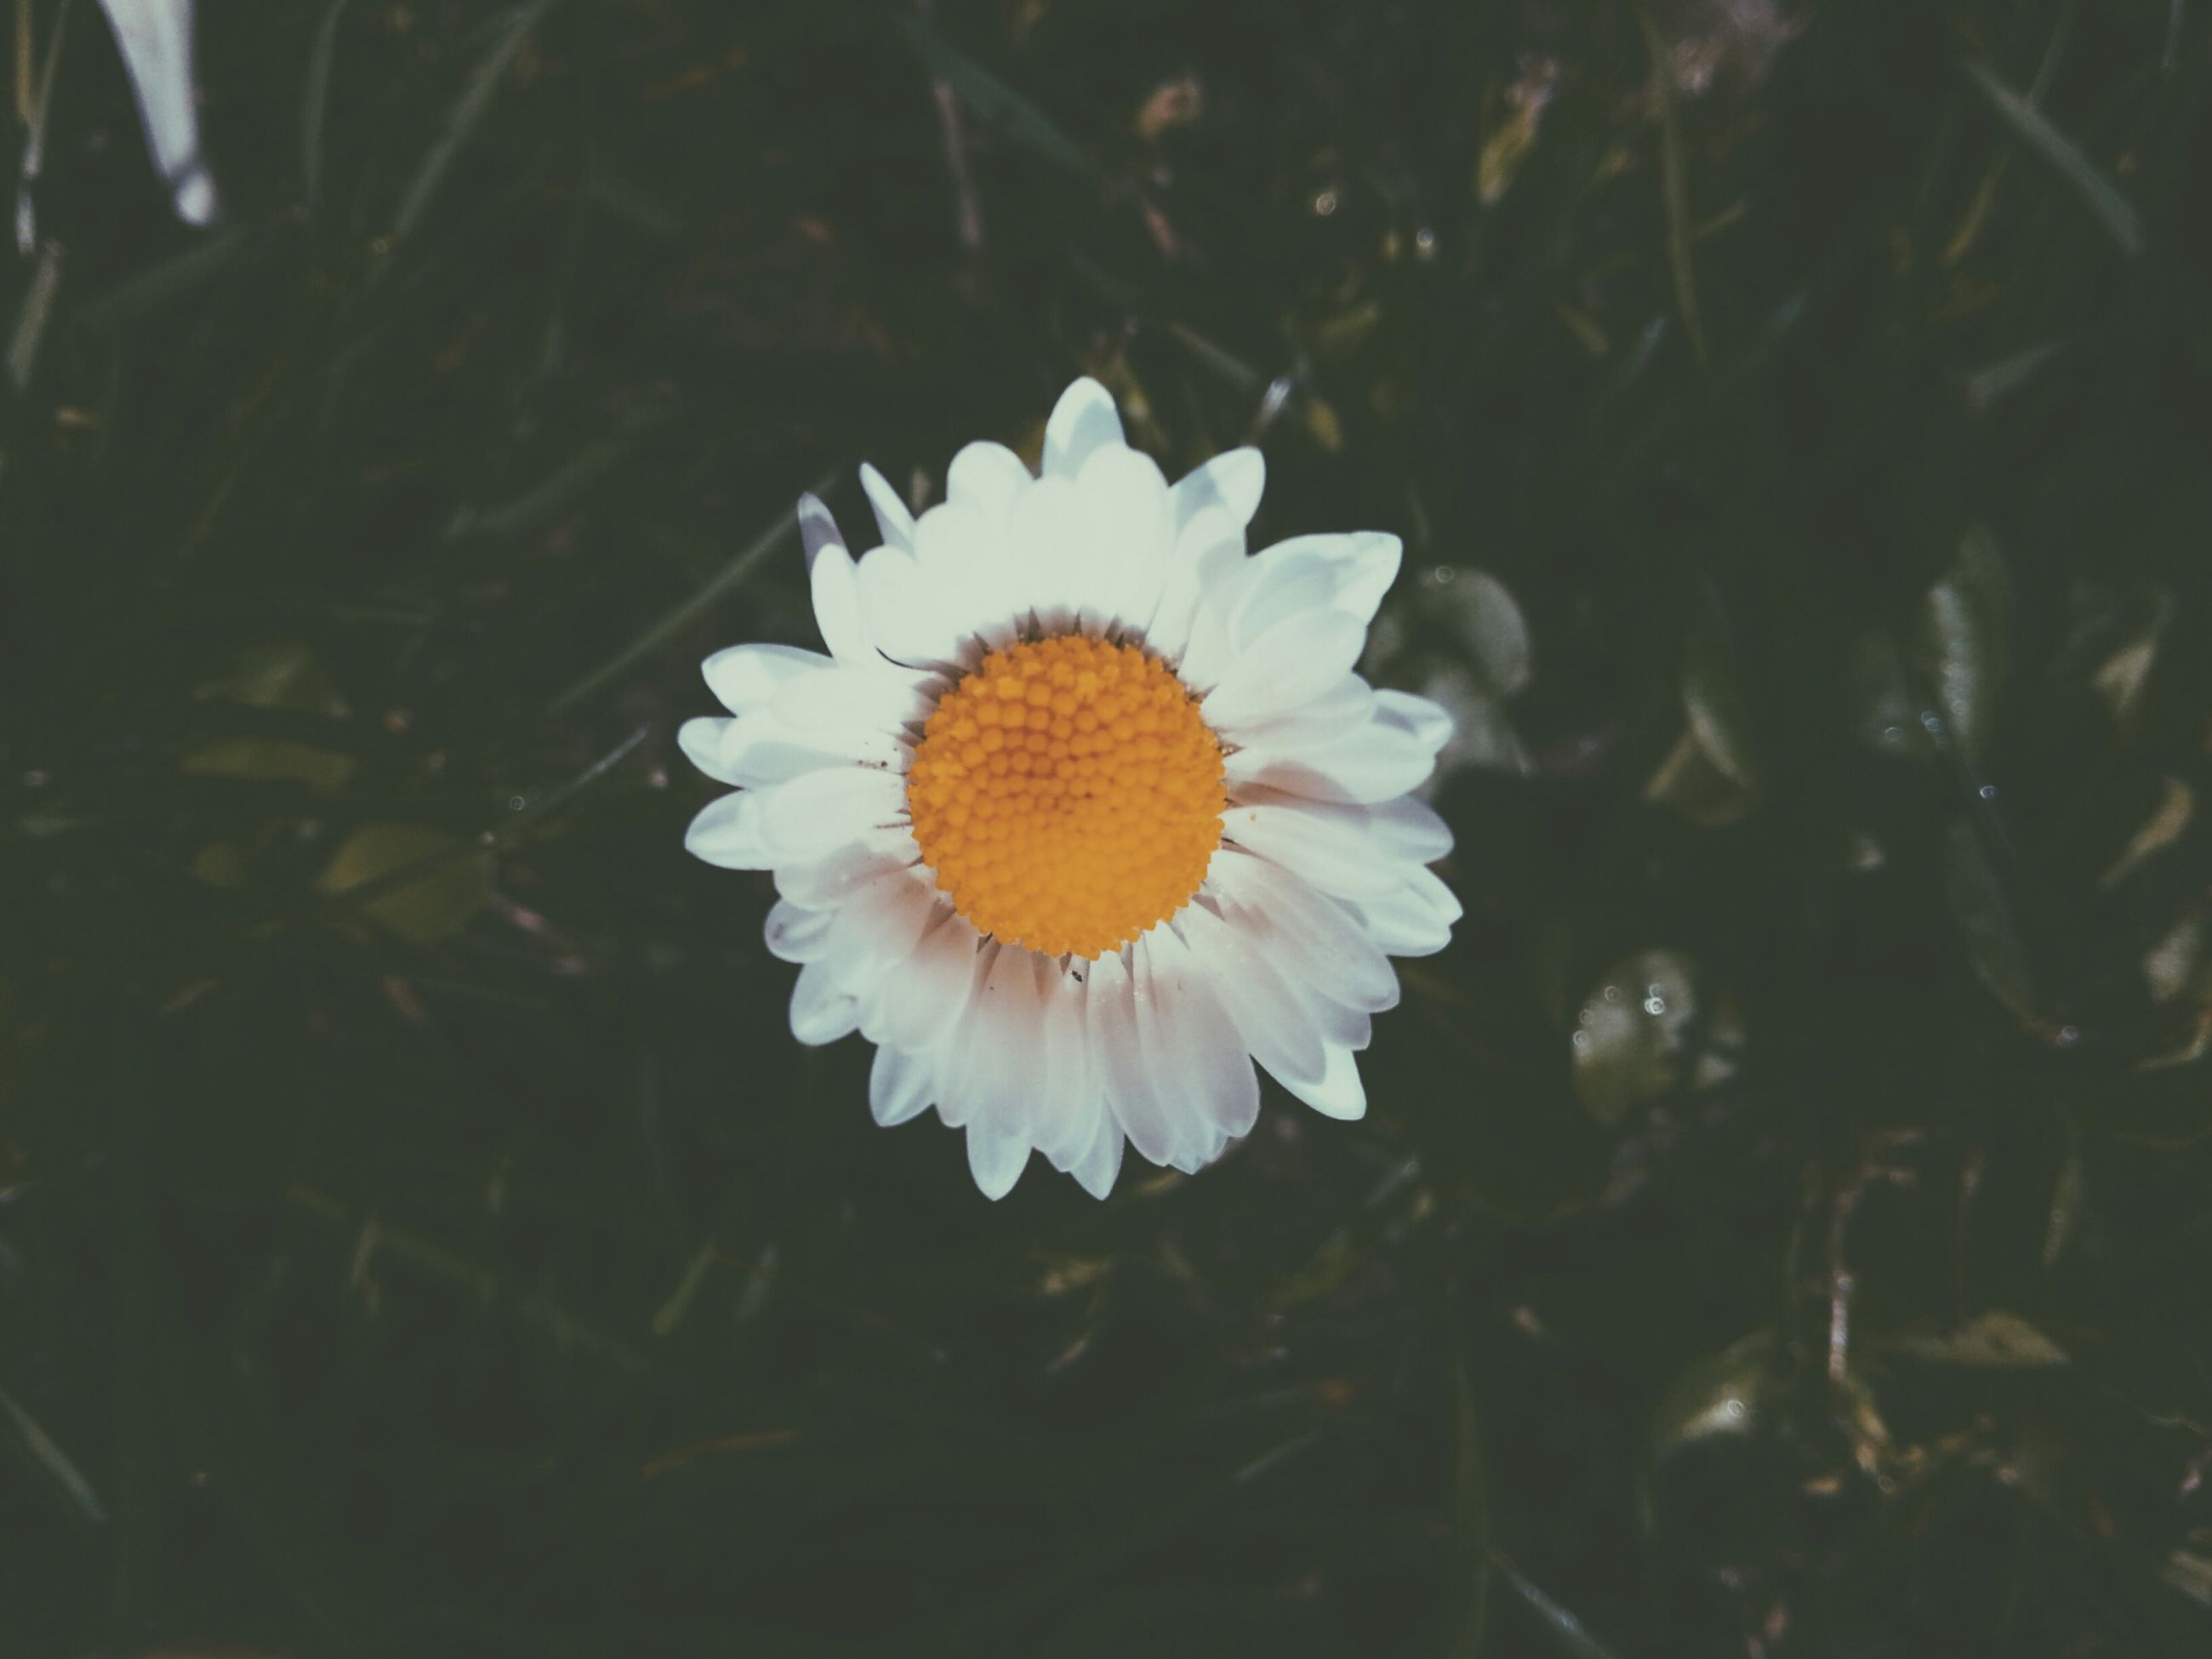 flower, petal, freshness, fragility, flower head, growth, white color, beauty in nature, single flower, blooming, pollen, close-up, nature, plant, daisy, focus on foreground, yellow, high angle view, in bloom, outdoors